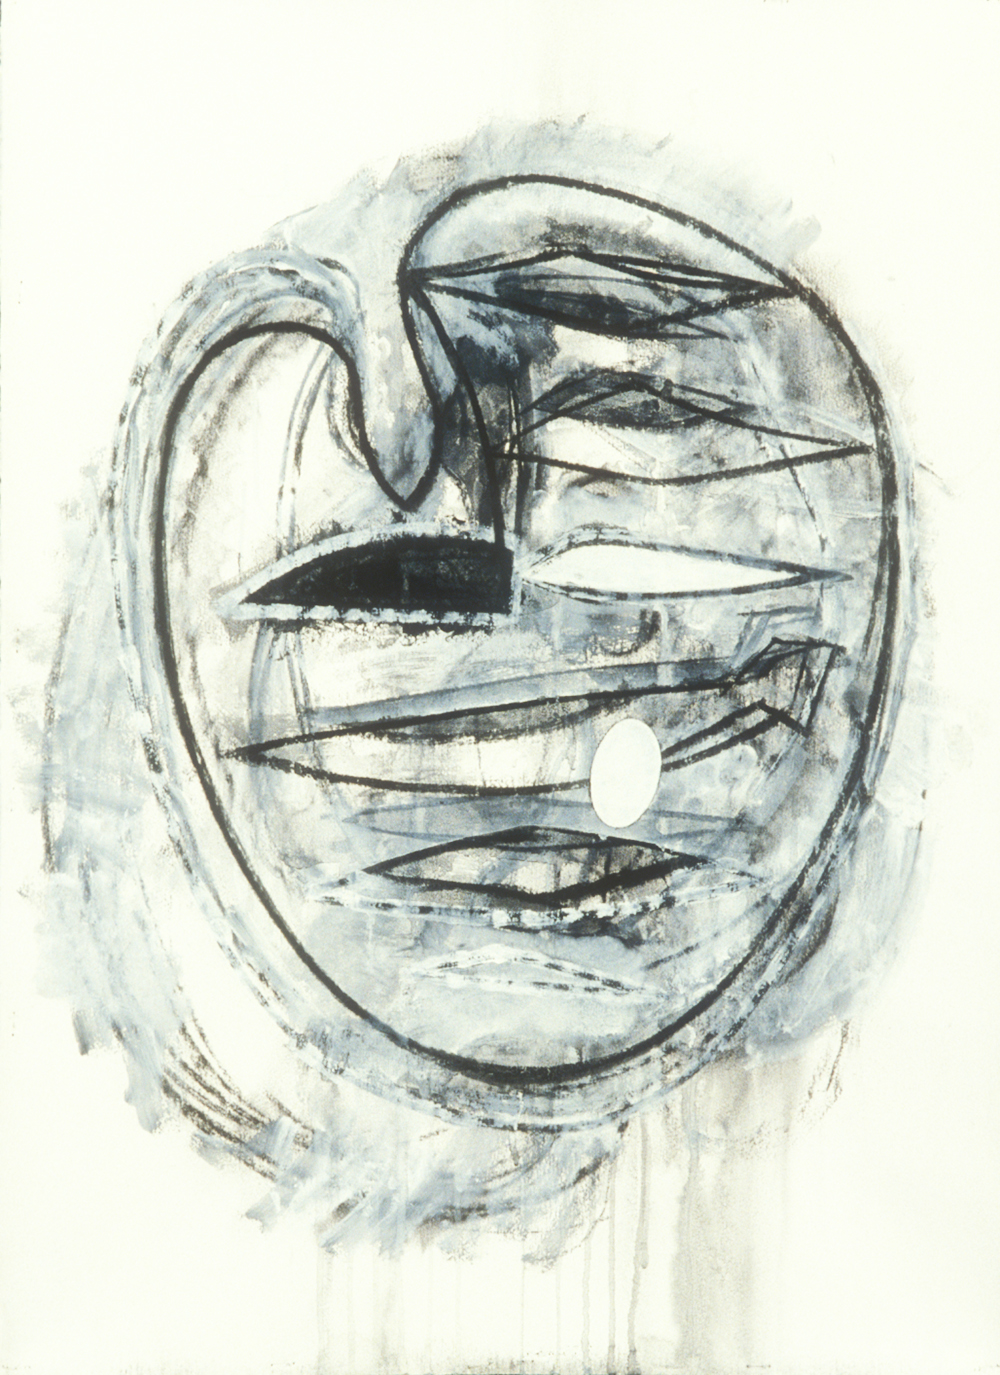 Elemental 17  , 1990, mixed media on paper, 29.5 x 21.5 in.